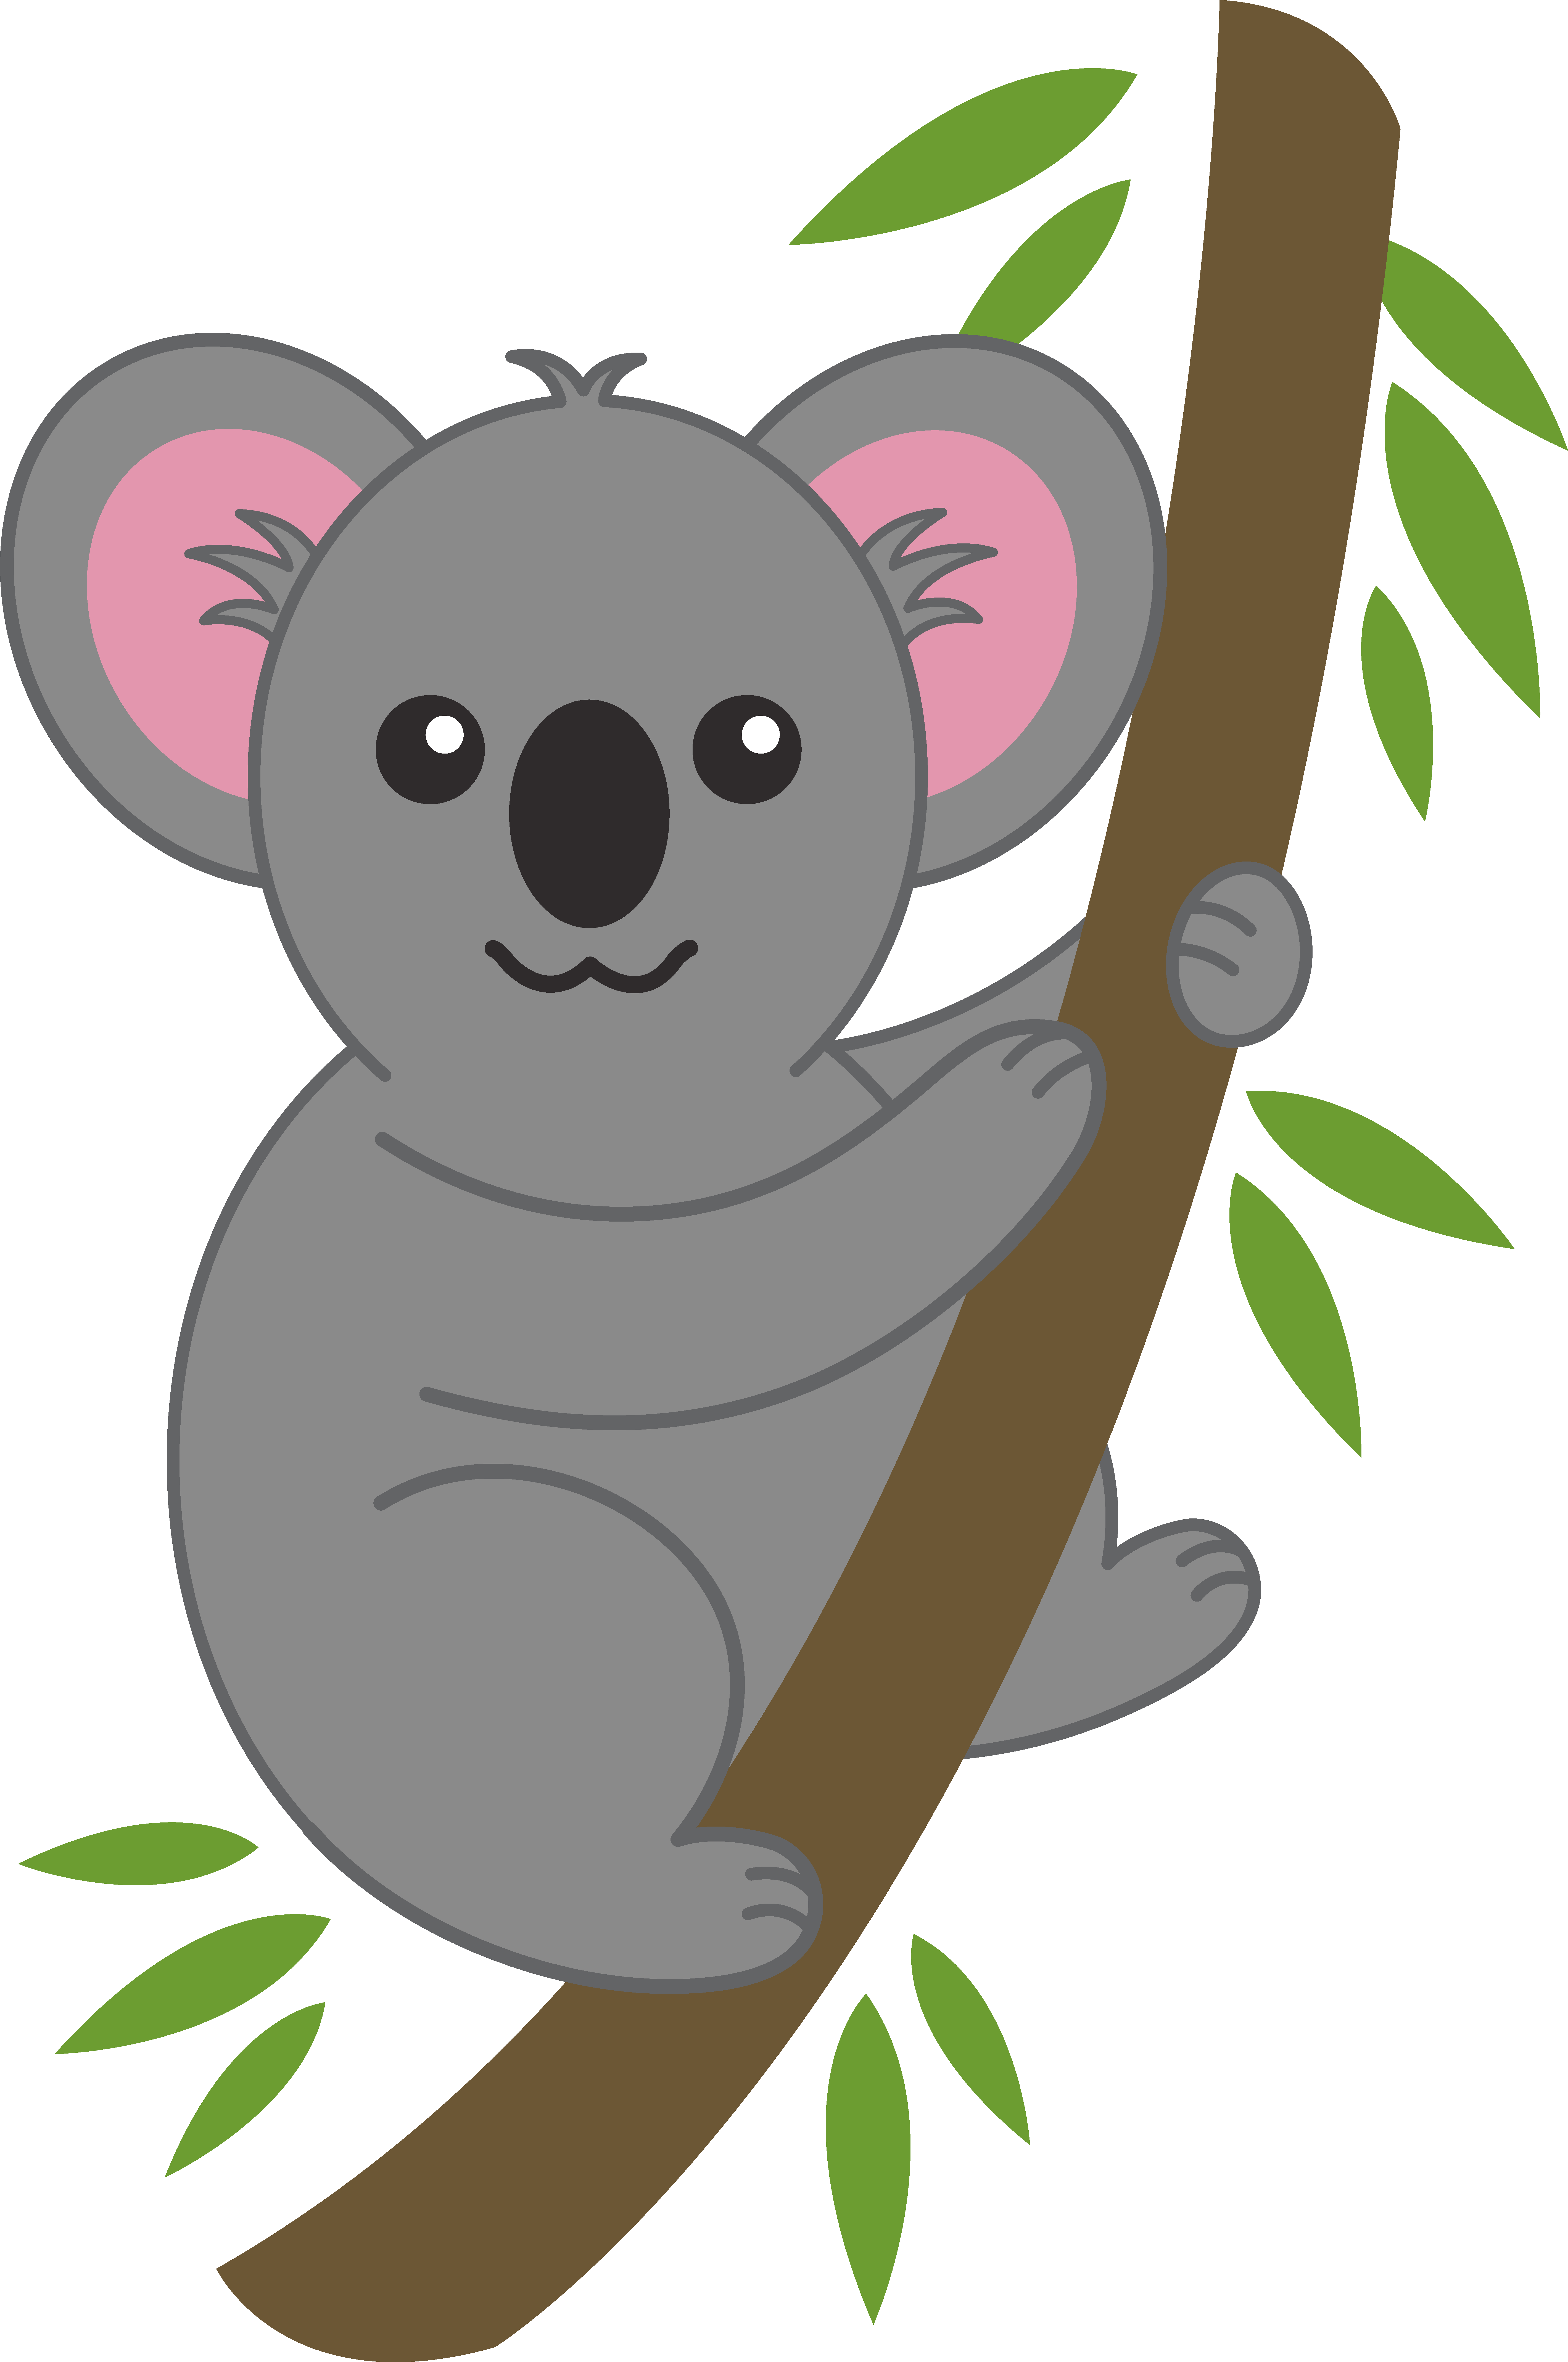 Koala bear clip art. Hamster clipart forest animal